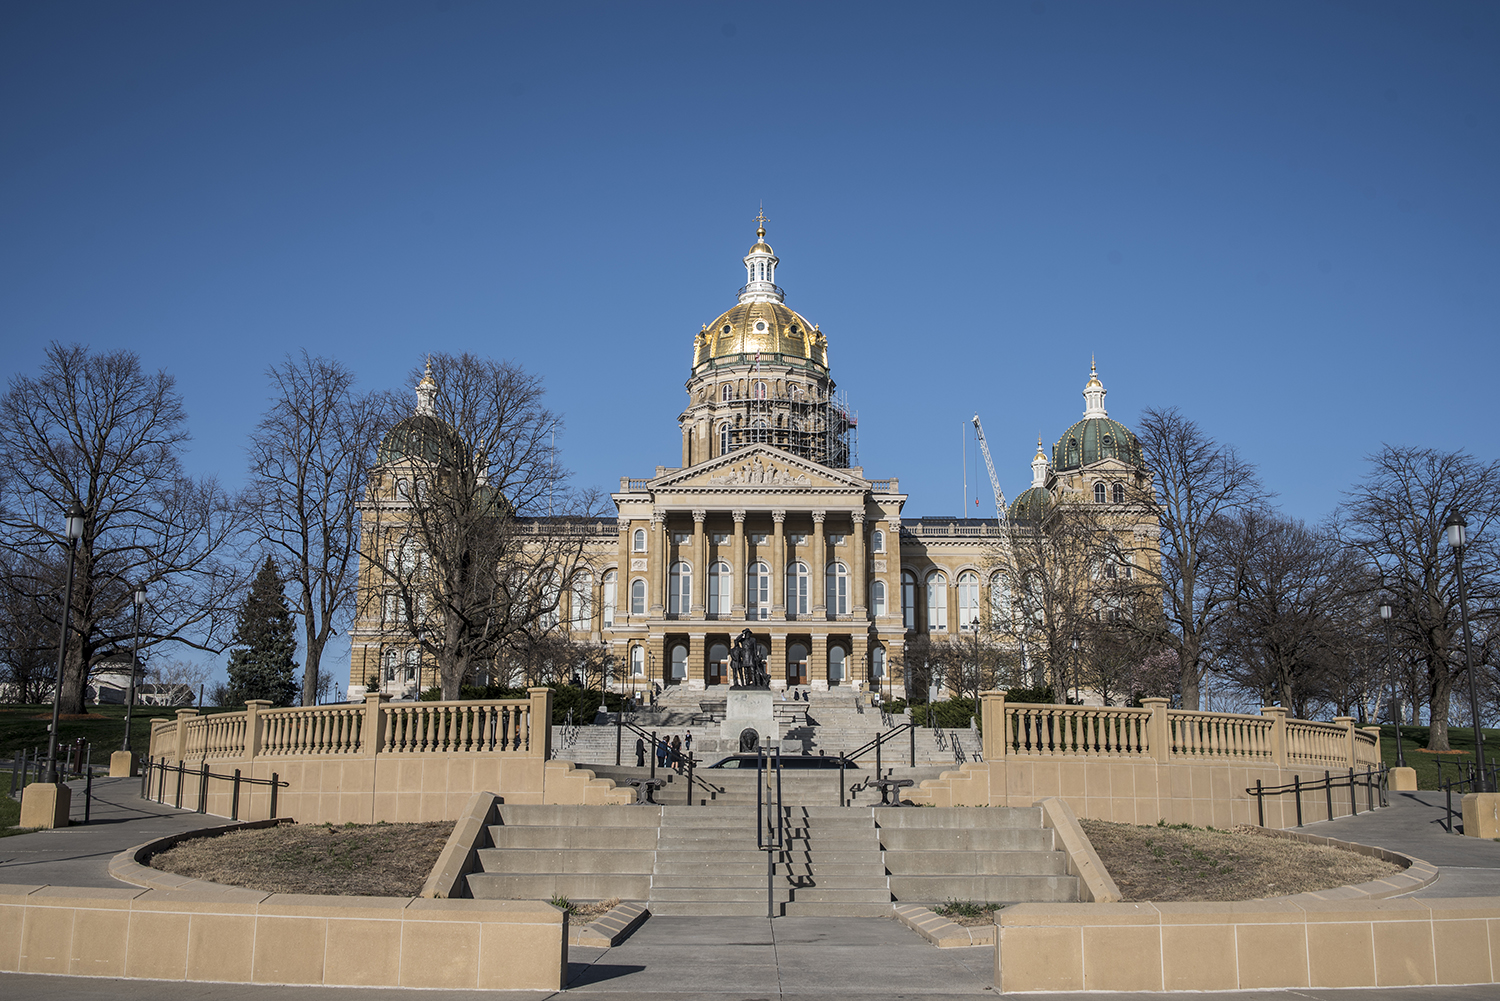 The Capitol building in Des Moines is pictured on April 29, 2018.